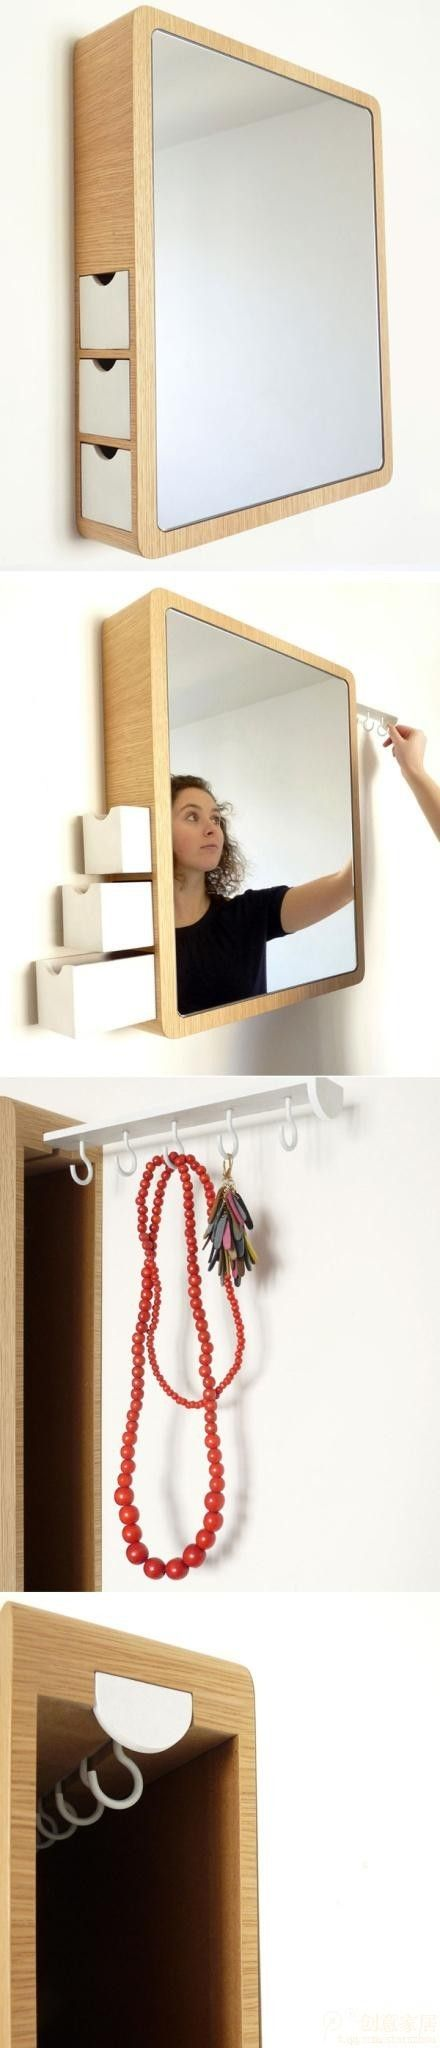 Design by Les M studio, this clever makeup mirror comes with hidden hanger and sliding storage boxs